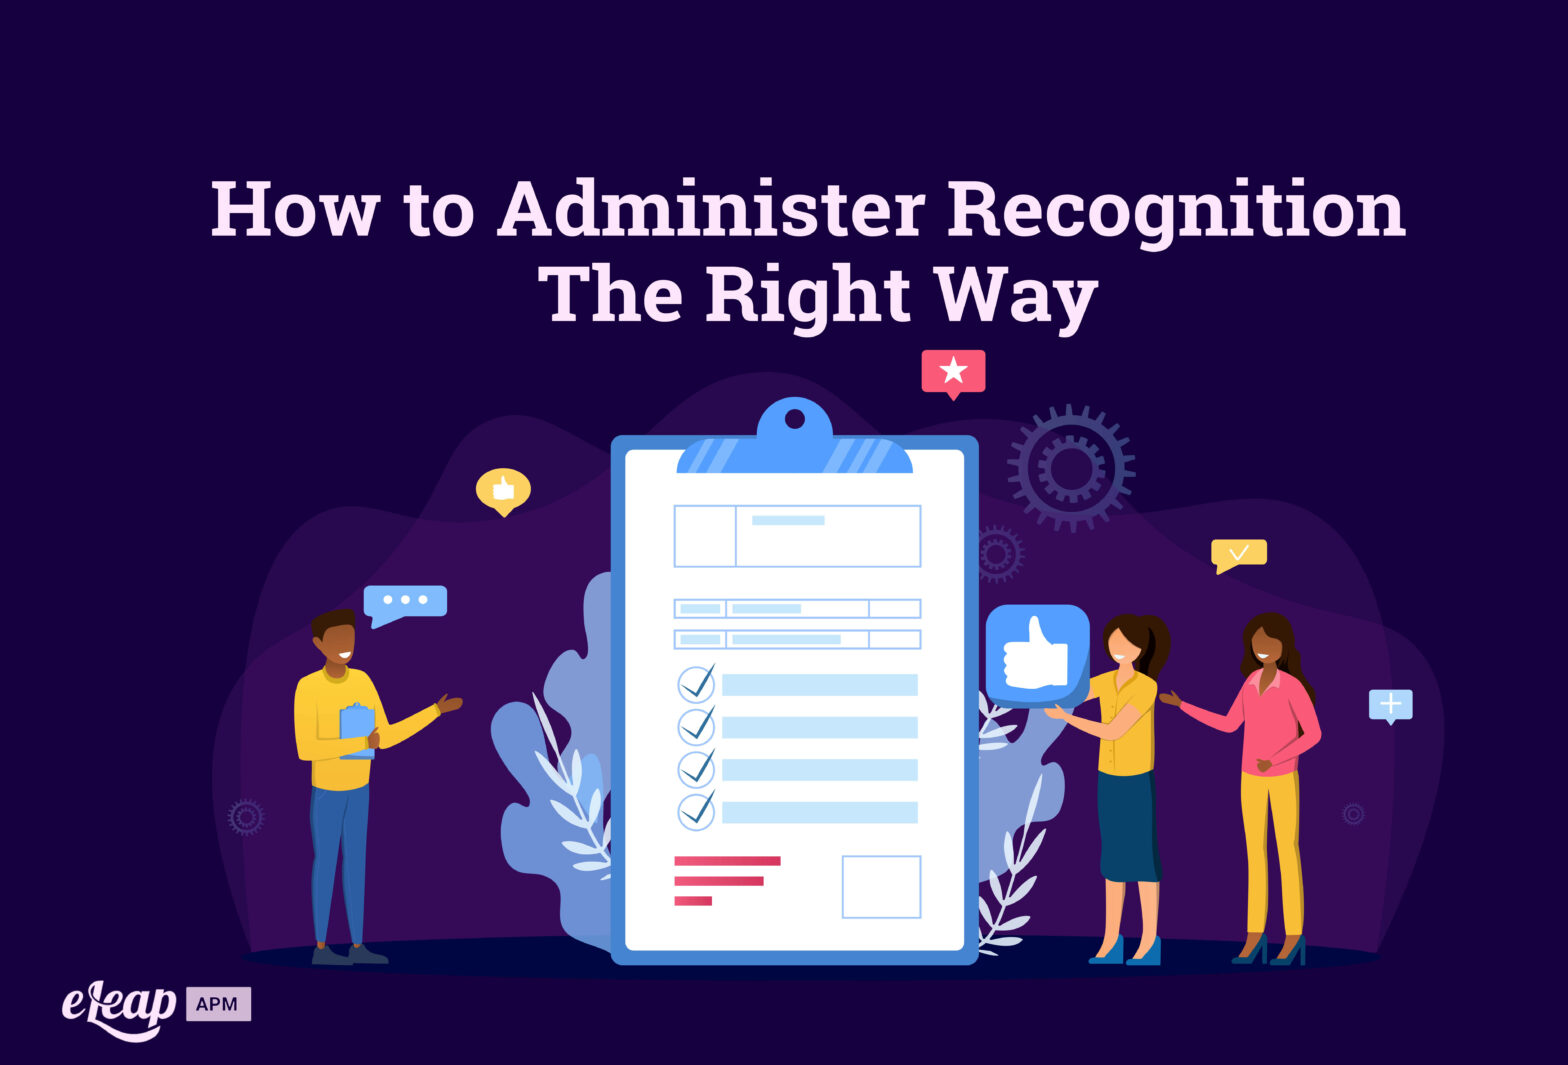 How to Administer Recognition The Right Way